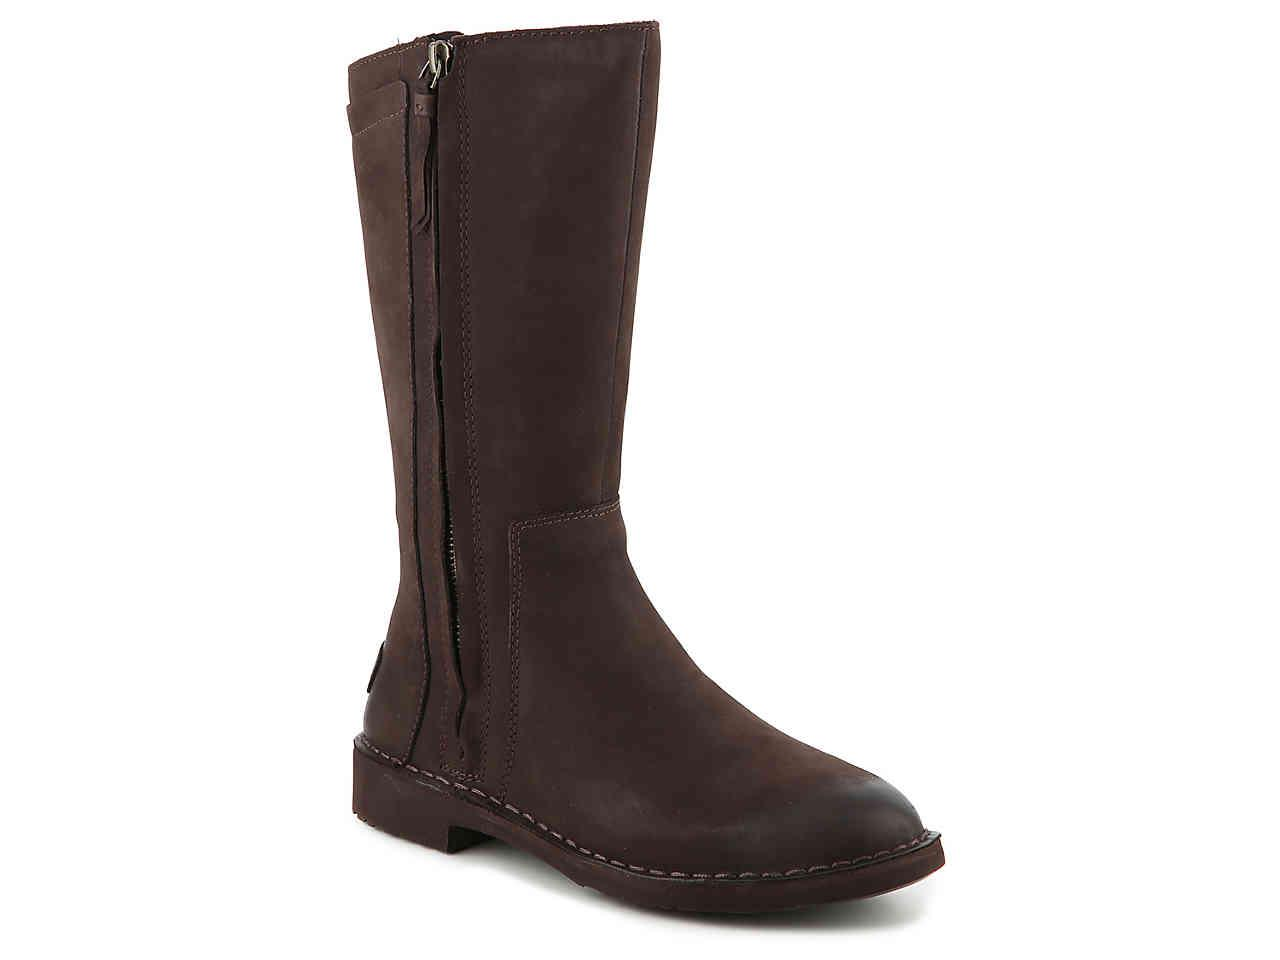 1bce17babe4 Ugg Brown Elly Boot